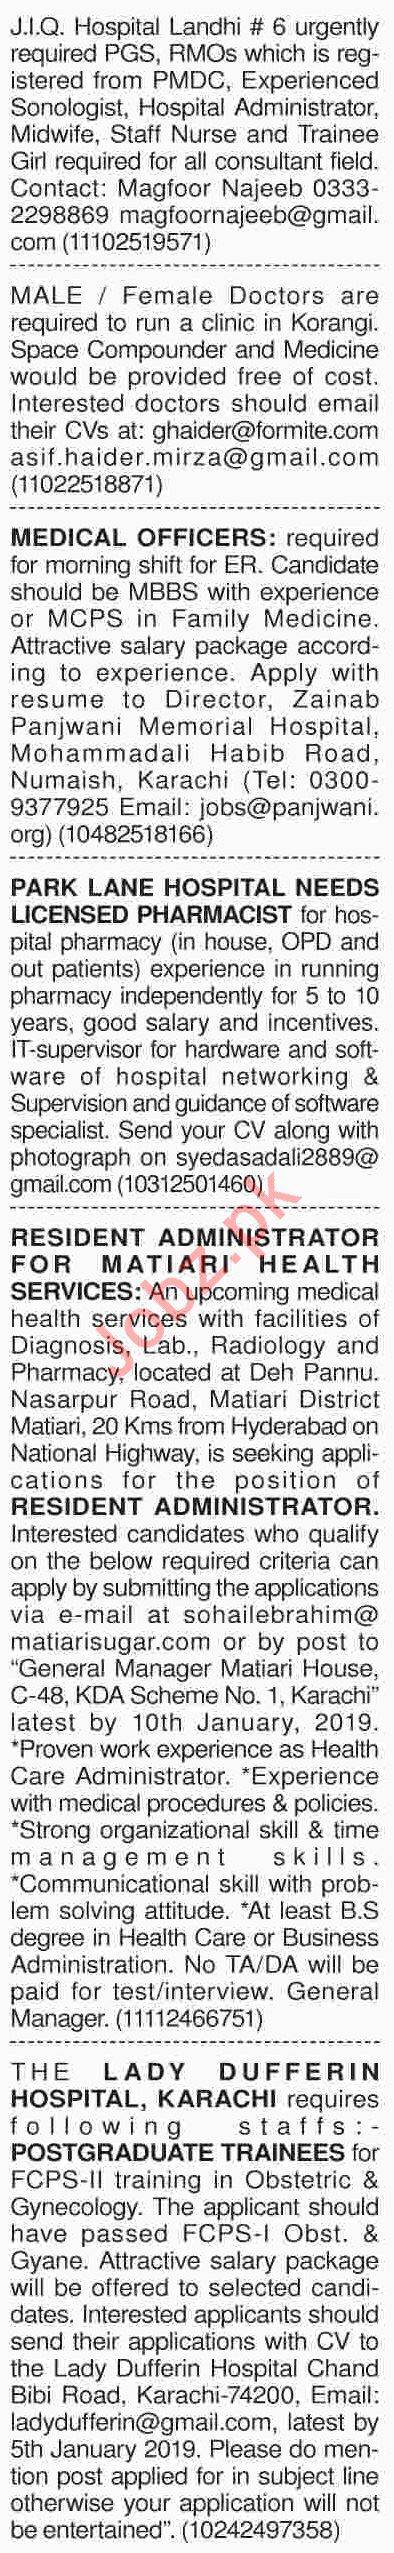 Dawn Sunday Newspaper Medical Classified Ads 30/12/2018